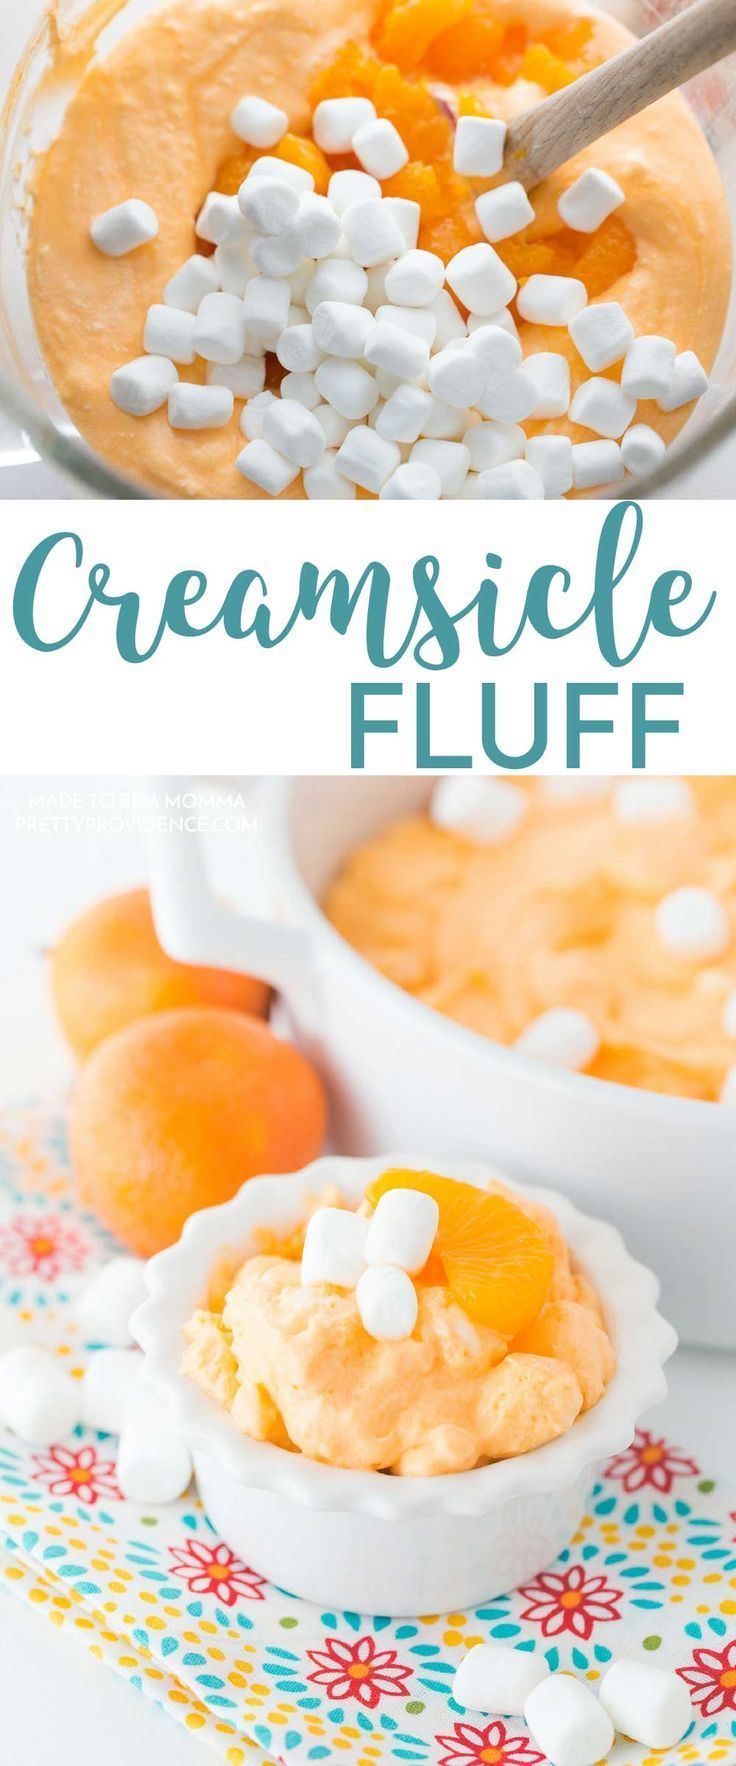 This creamsicle fluff is the perfect treat. Filled with mandarin oranges and marshmallows this fluff is full of flavor!